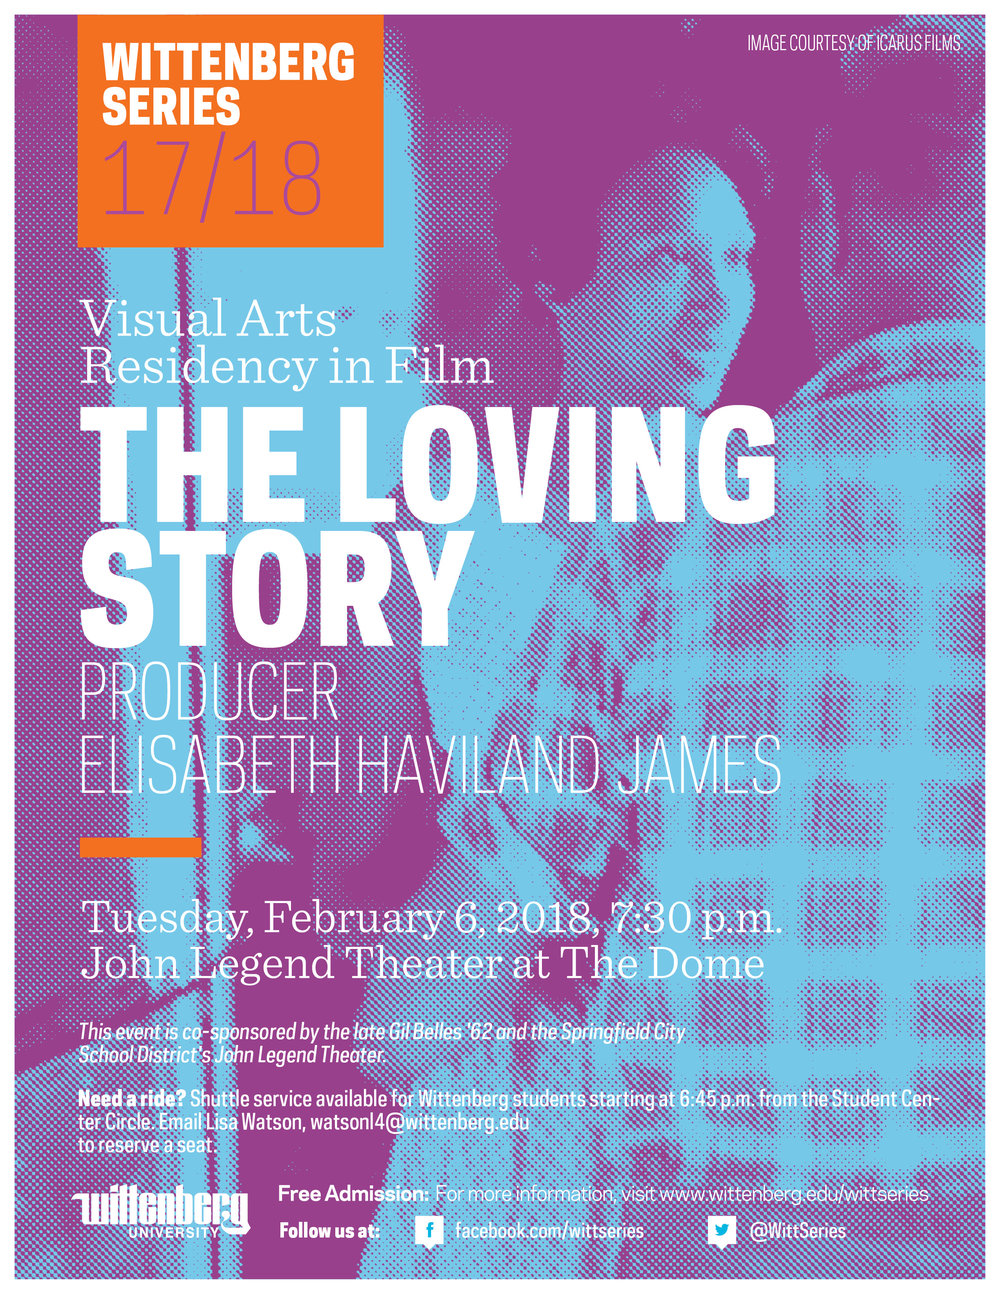 WITT SERIES THE LOVING STORY FLYER.jpg